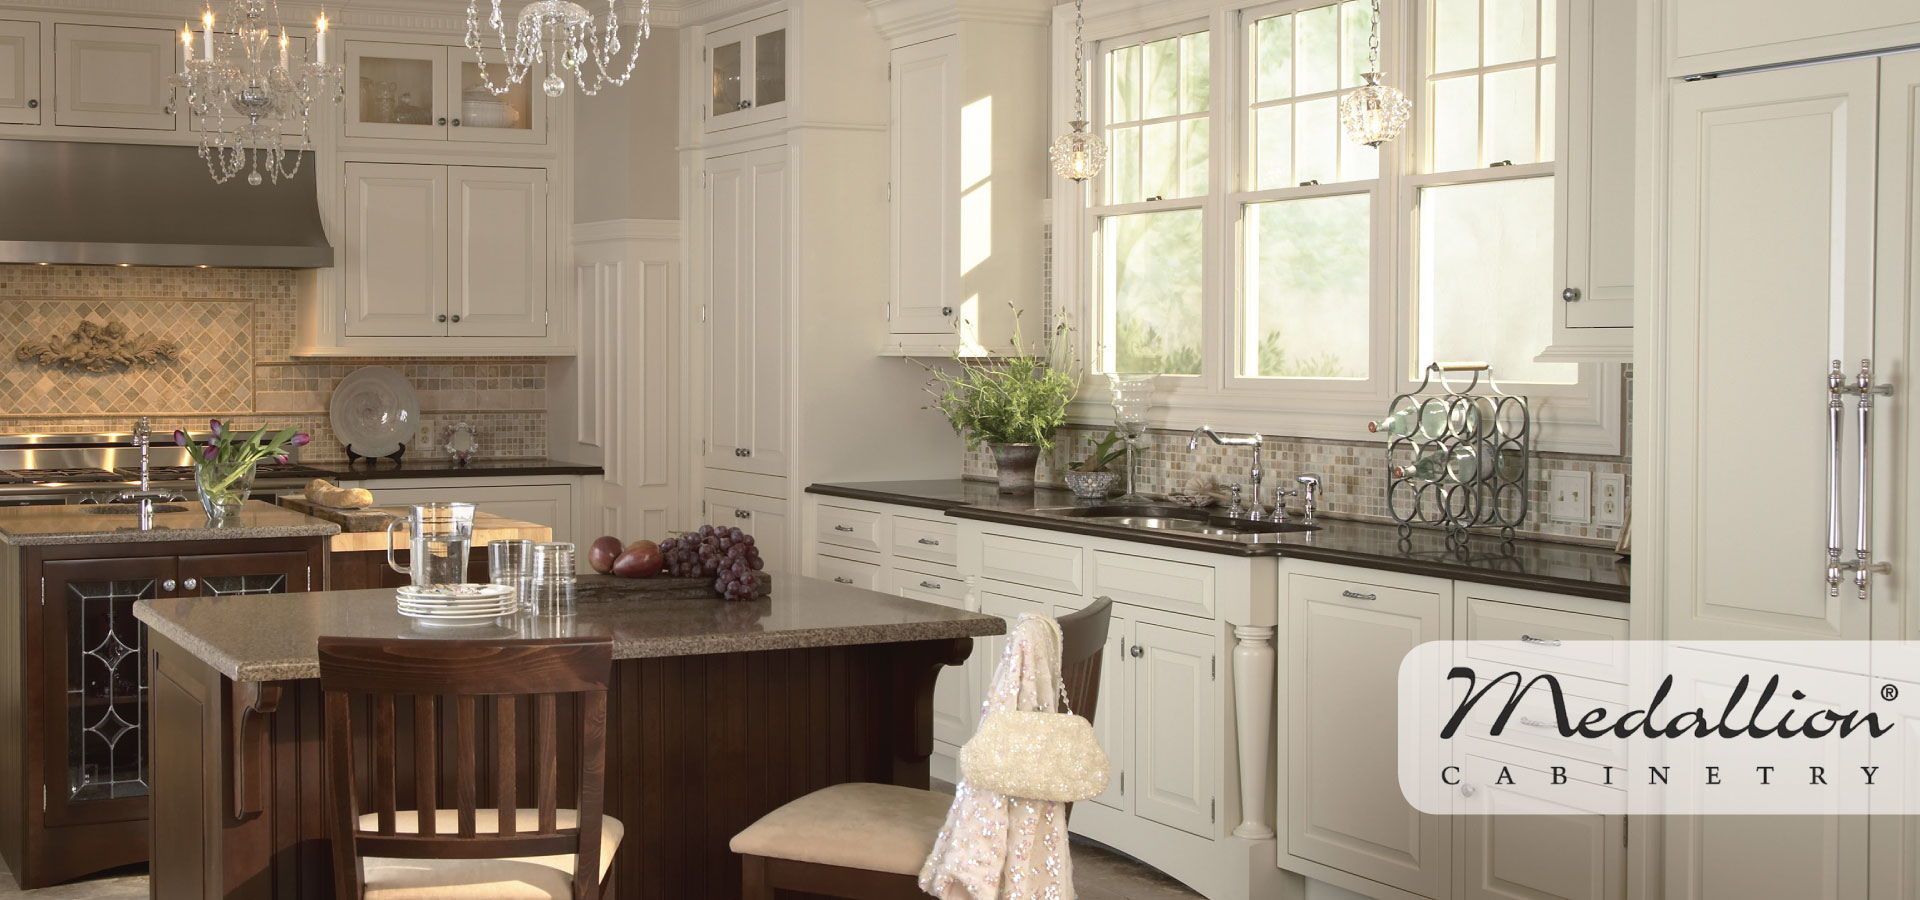 Banner Medallion Cabinetry